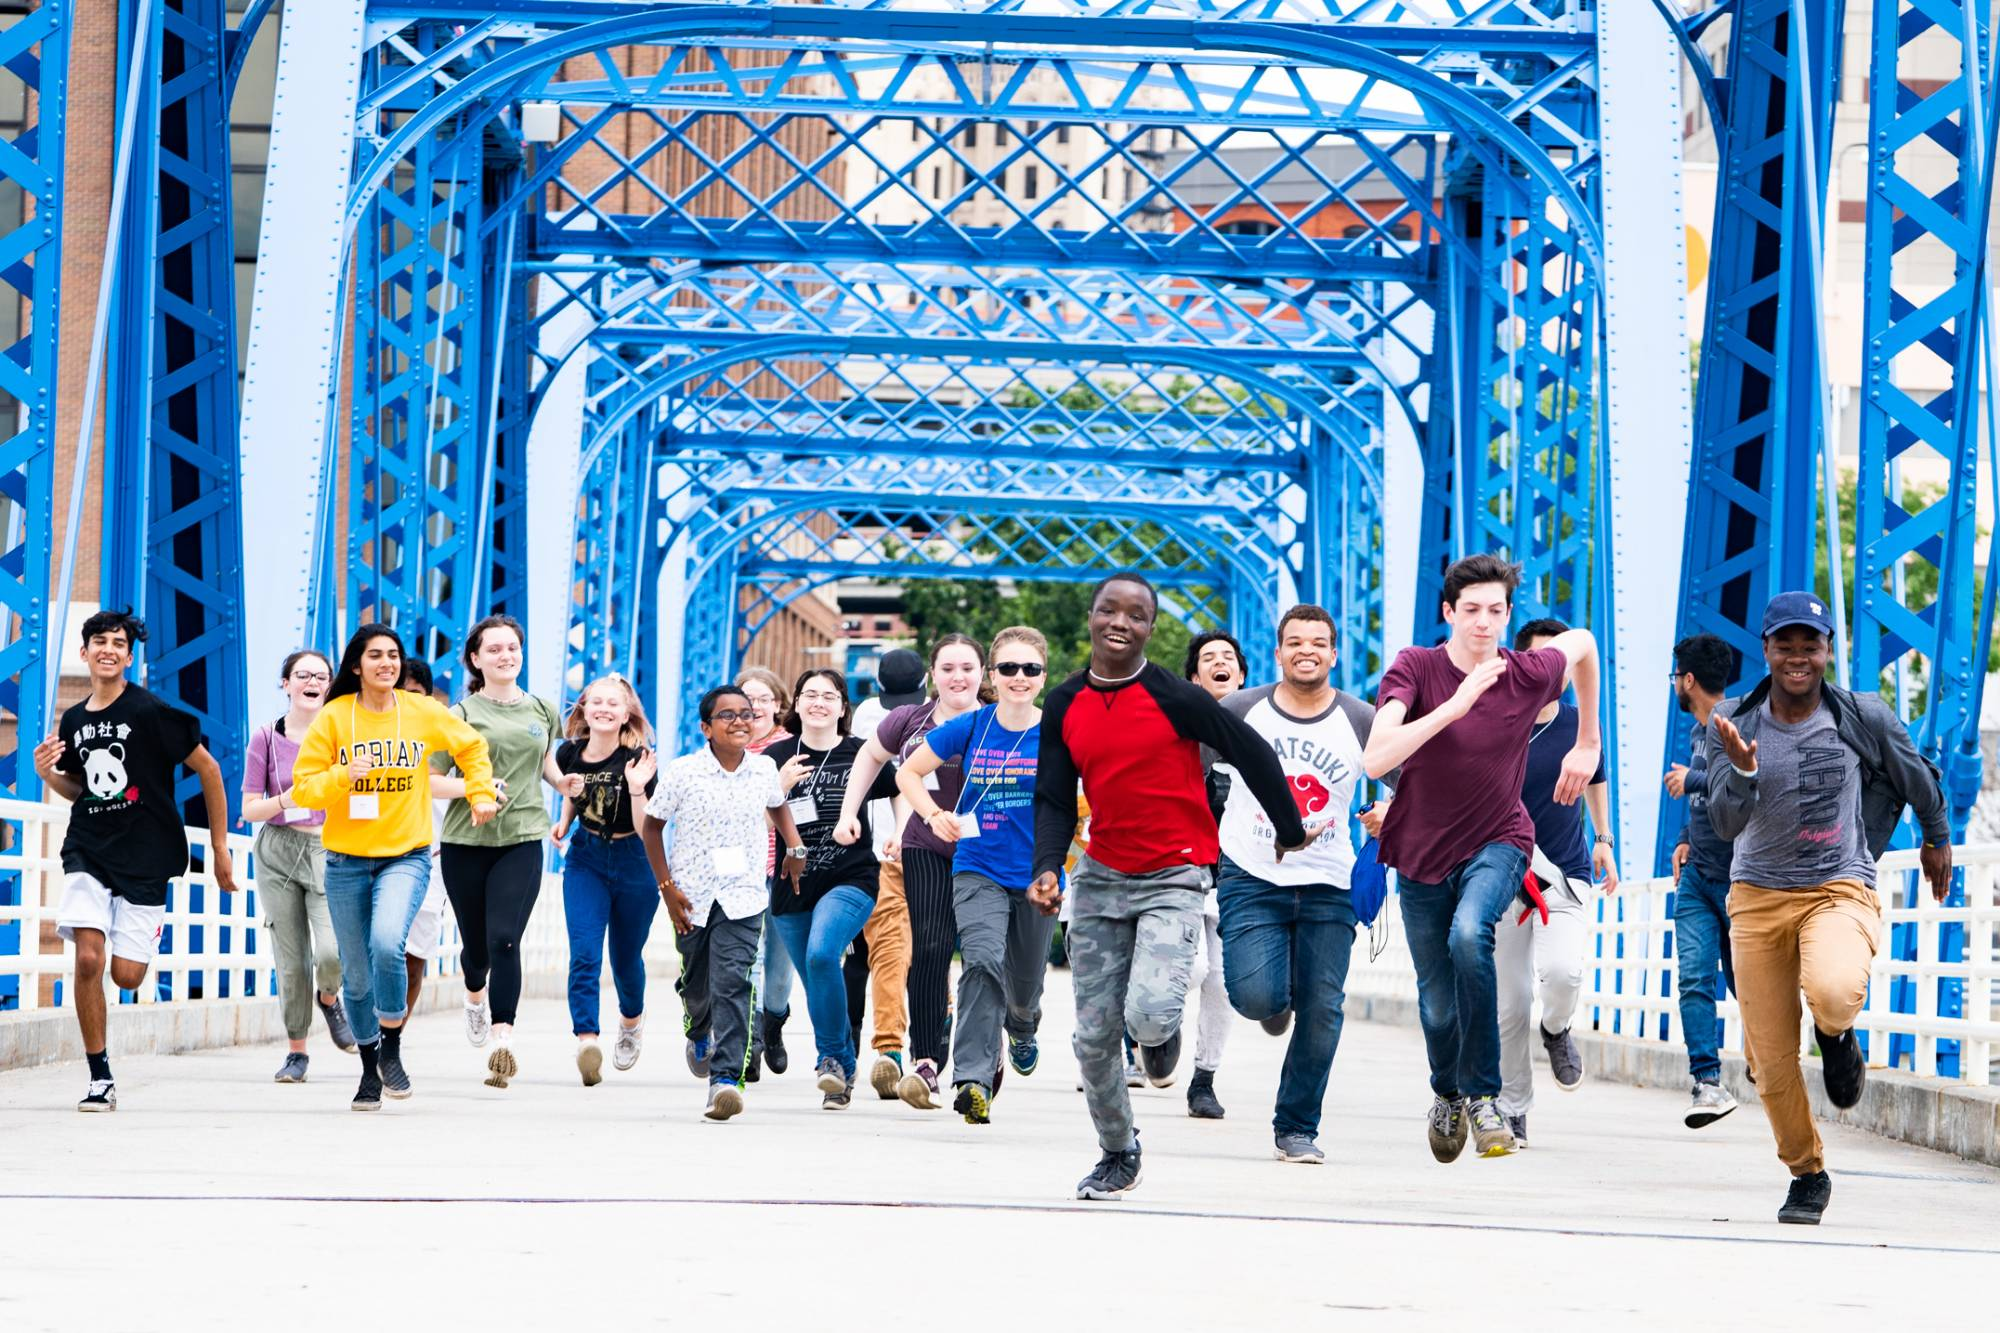 Students running enthusiastically across the Blue Bridge